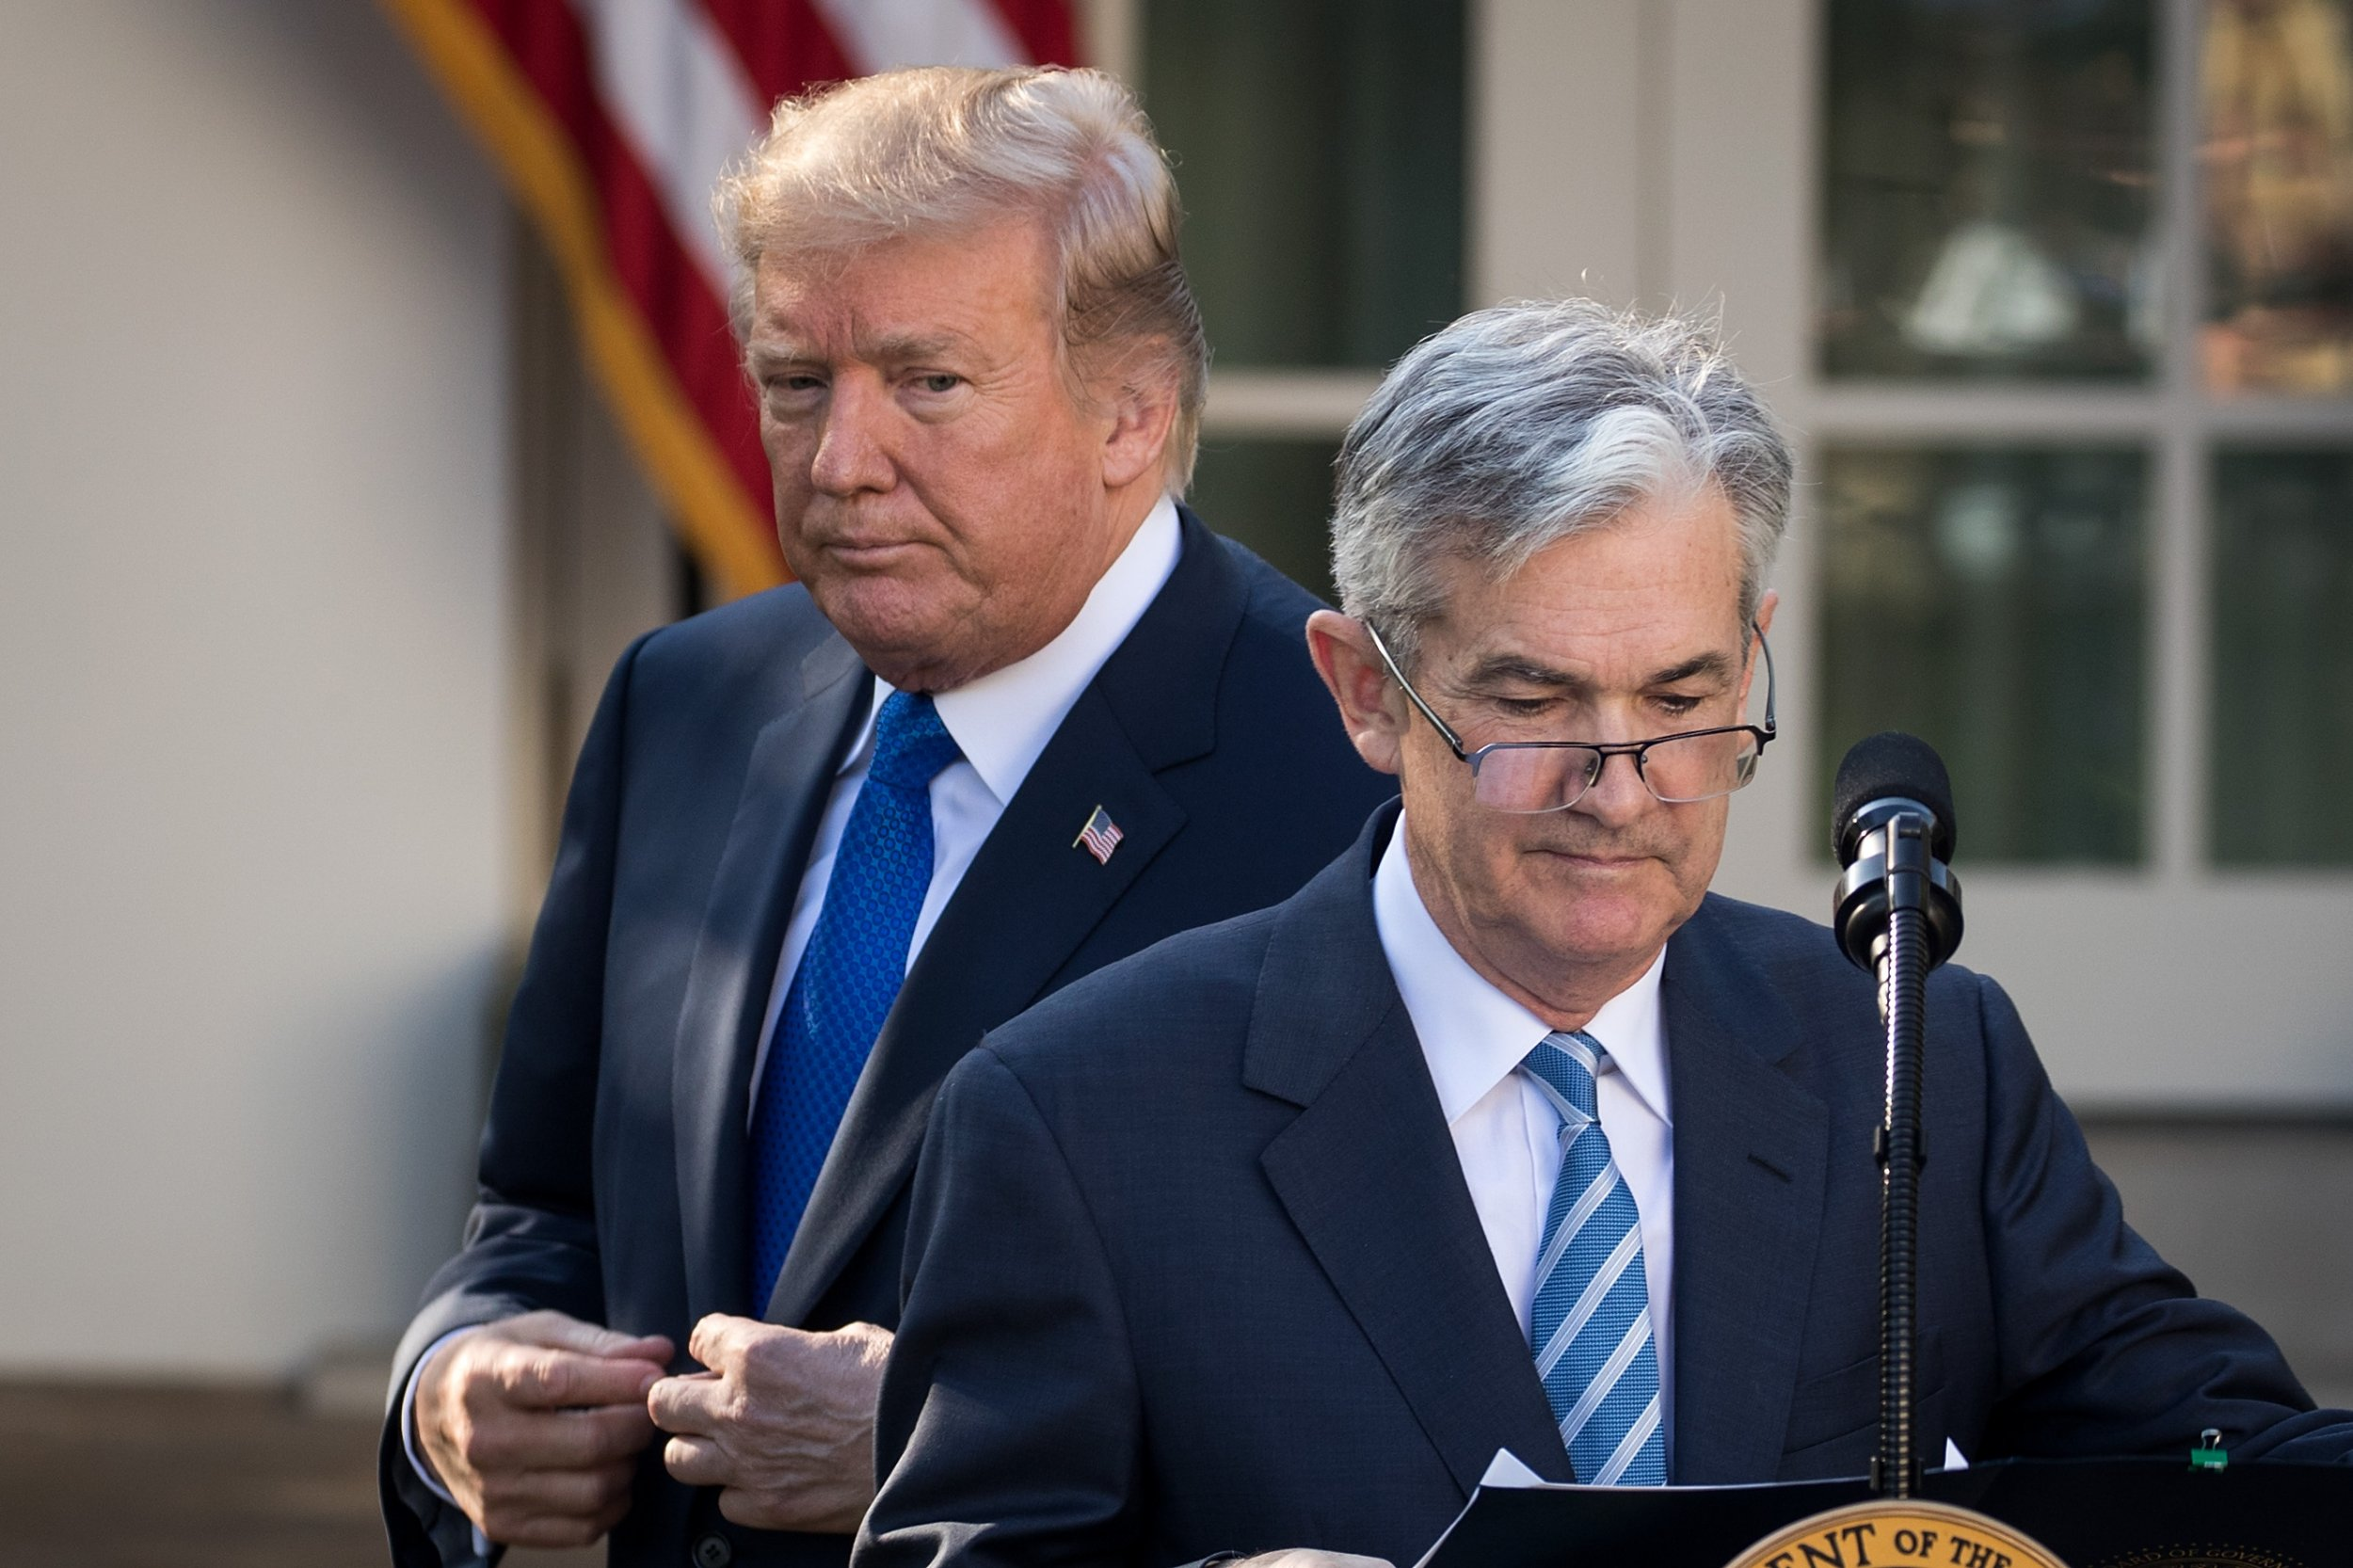 Donald Trump Fed Chairman Jerome Powell